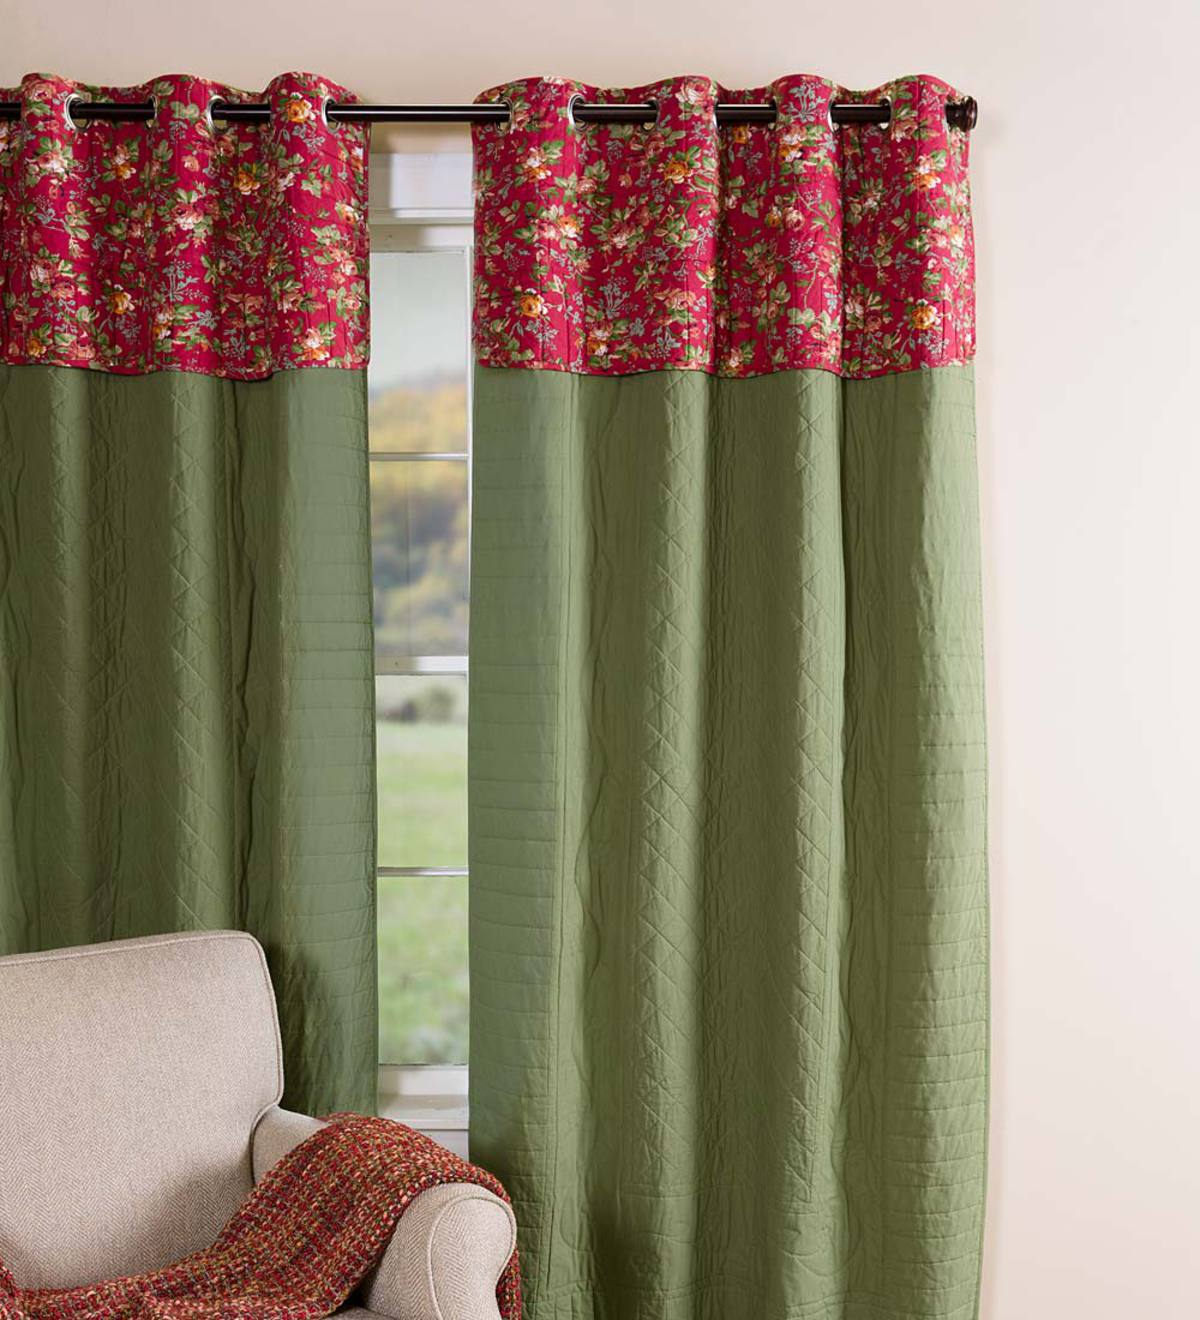 Insulating Window Quilt Valance with Grommets